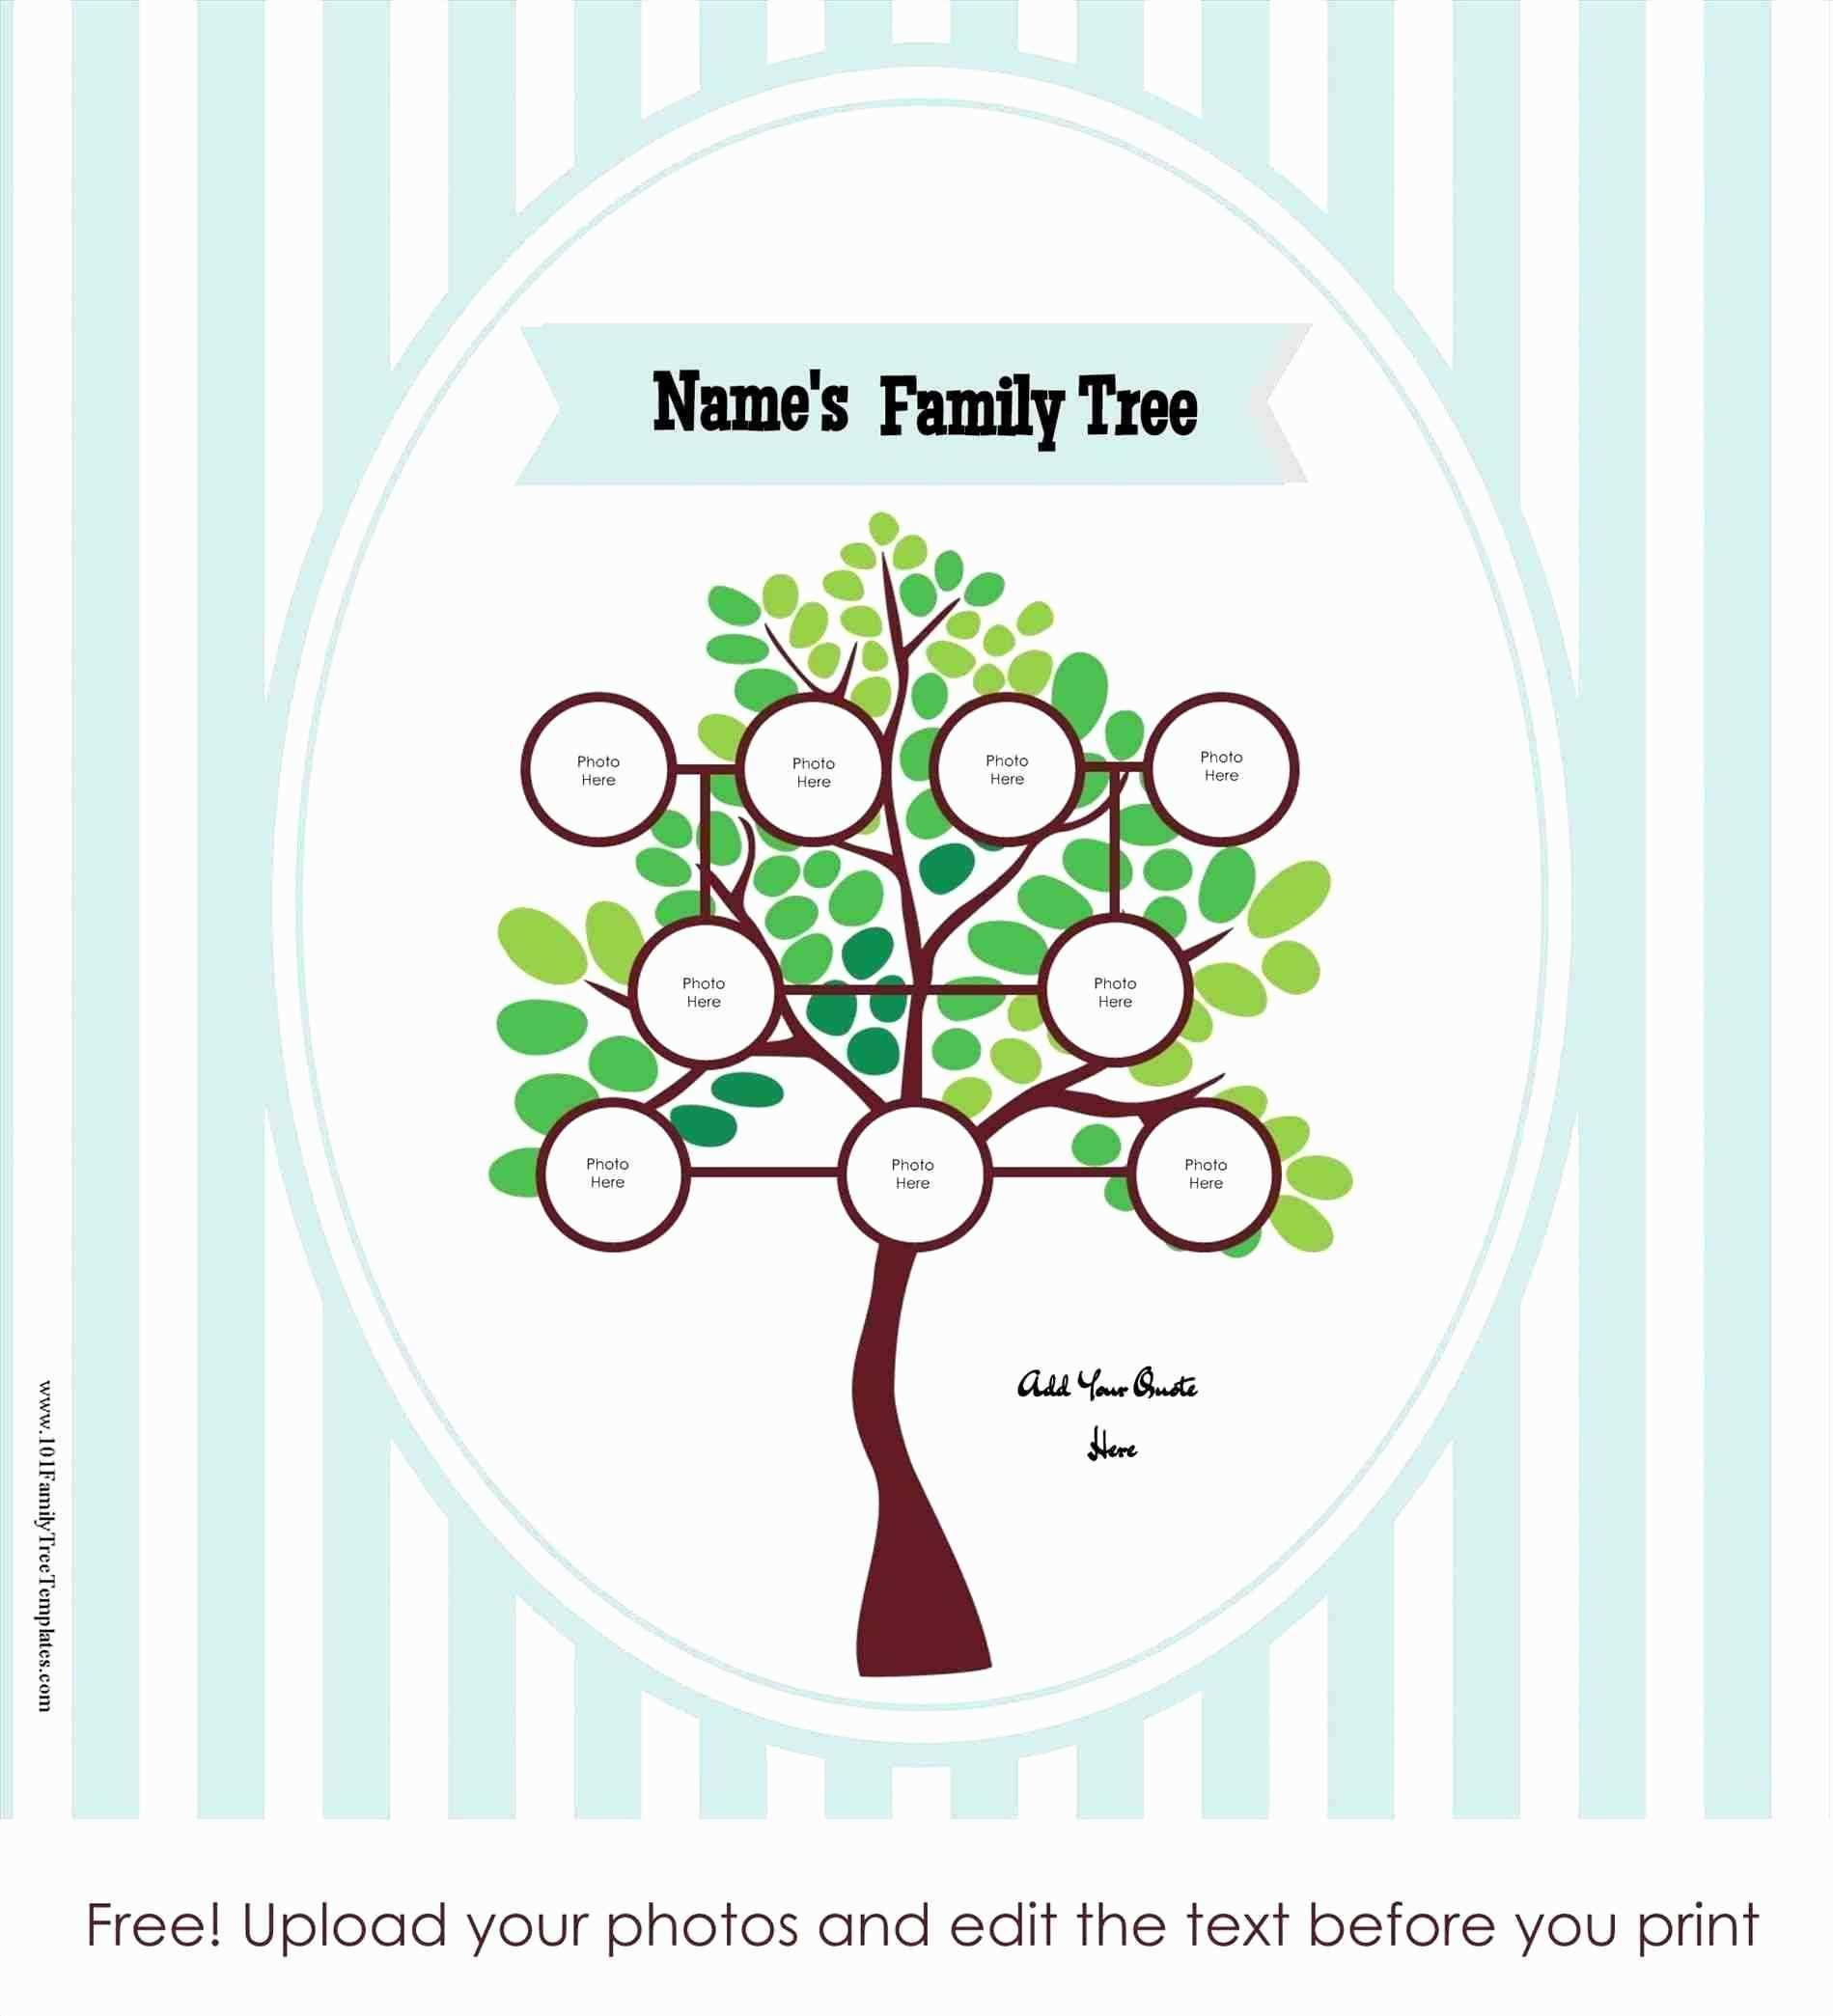 Family Tree Template Maker Online